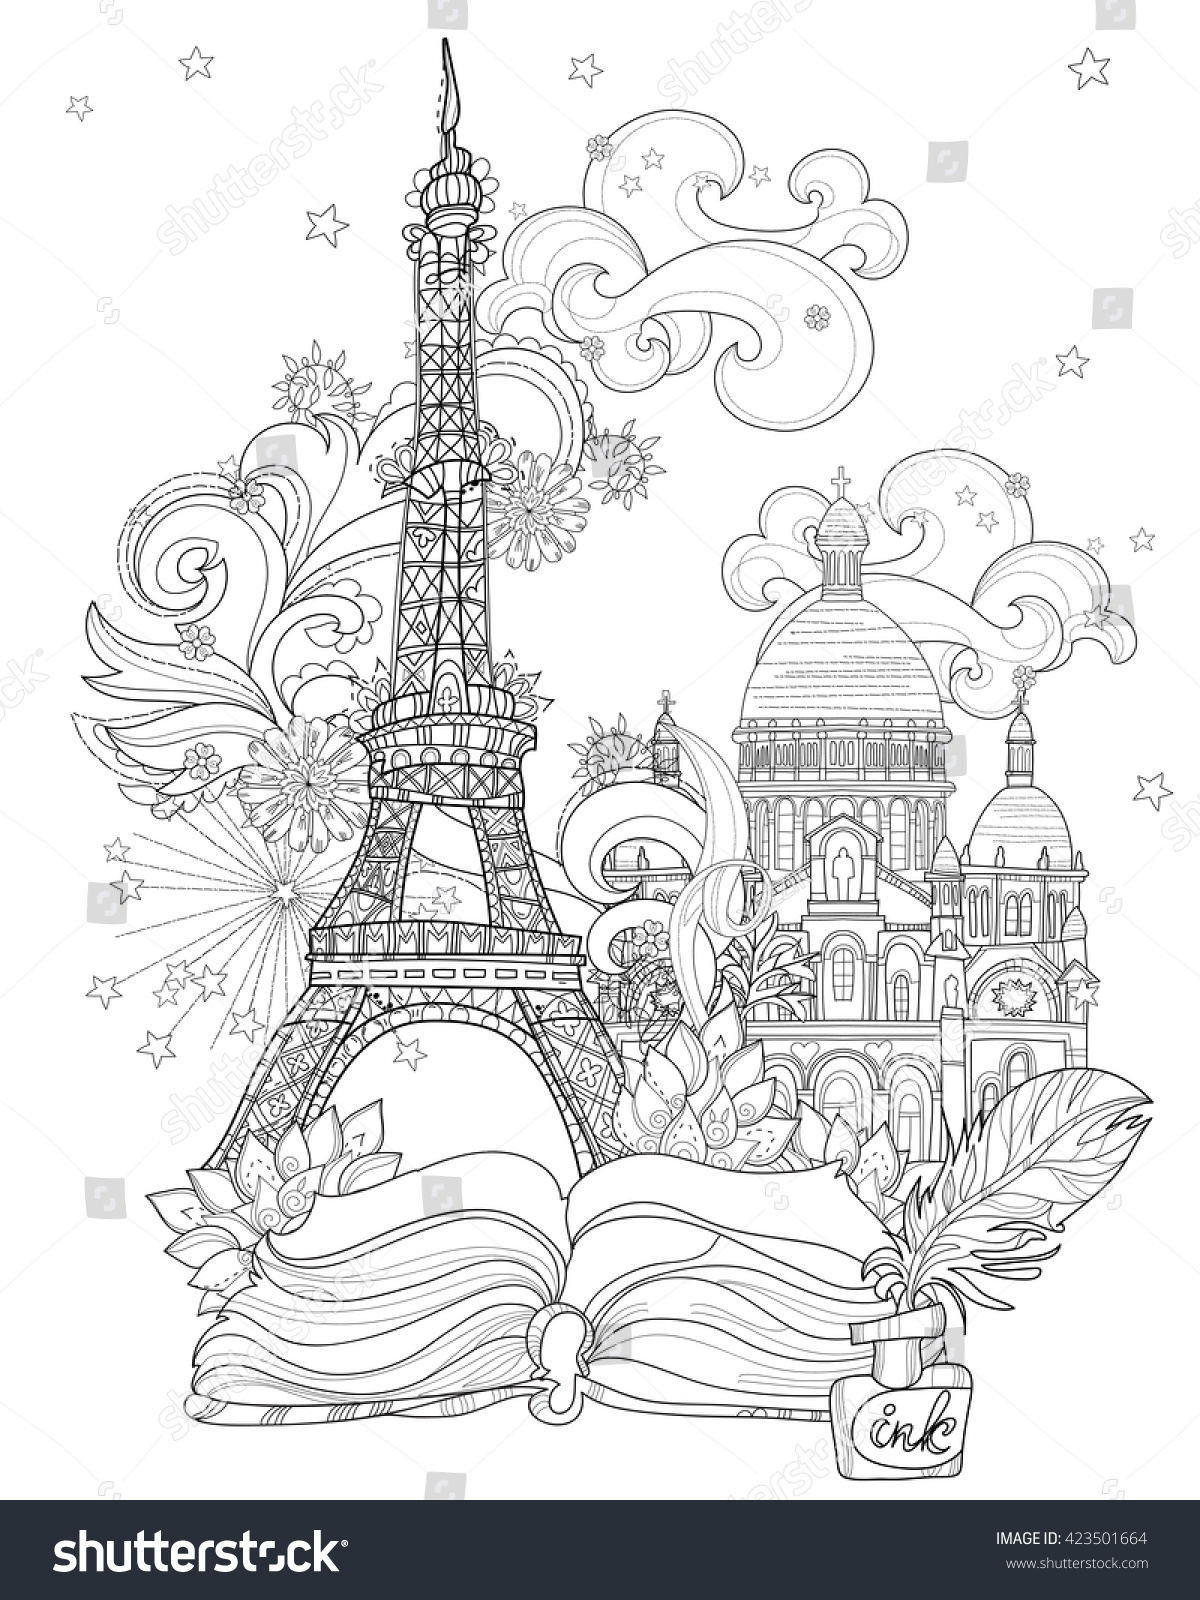 zen art stylized eiffel tower hand drawn vector illustration from story magicsketch for poster - France Eiffel Tower Coloring Page